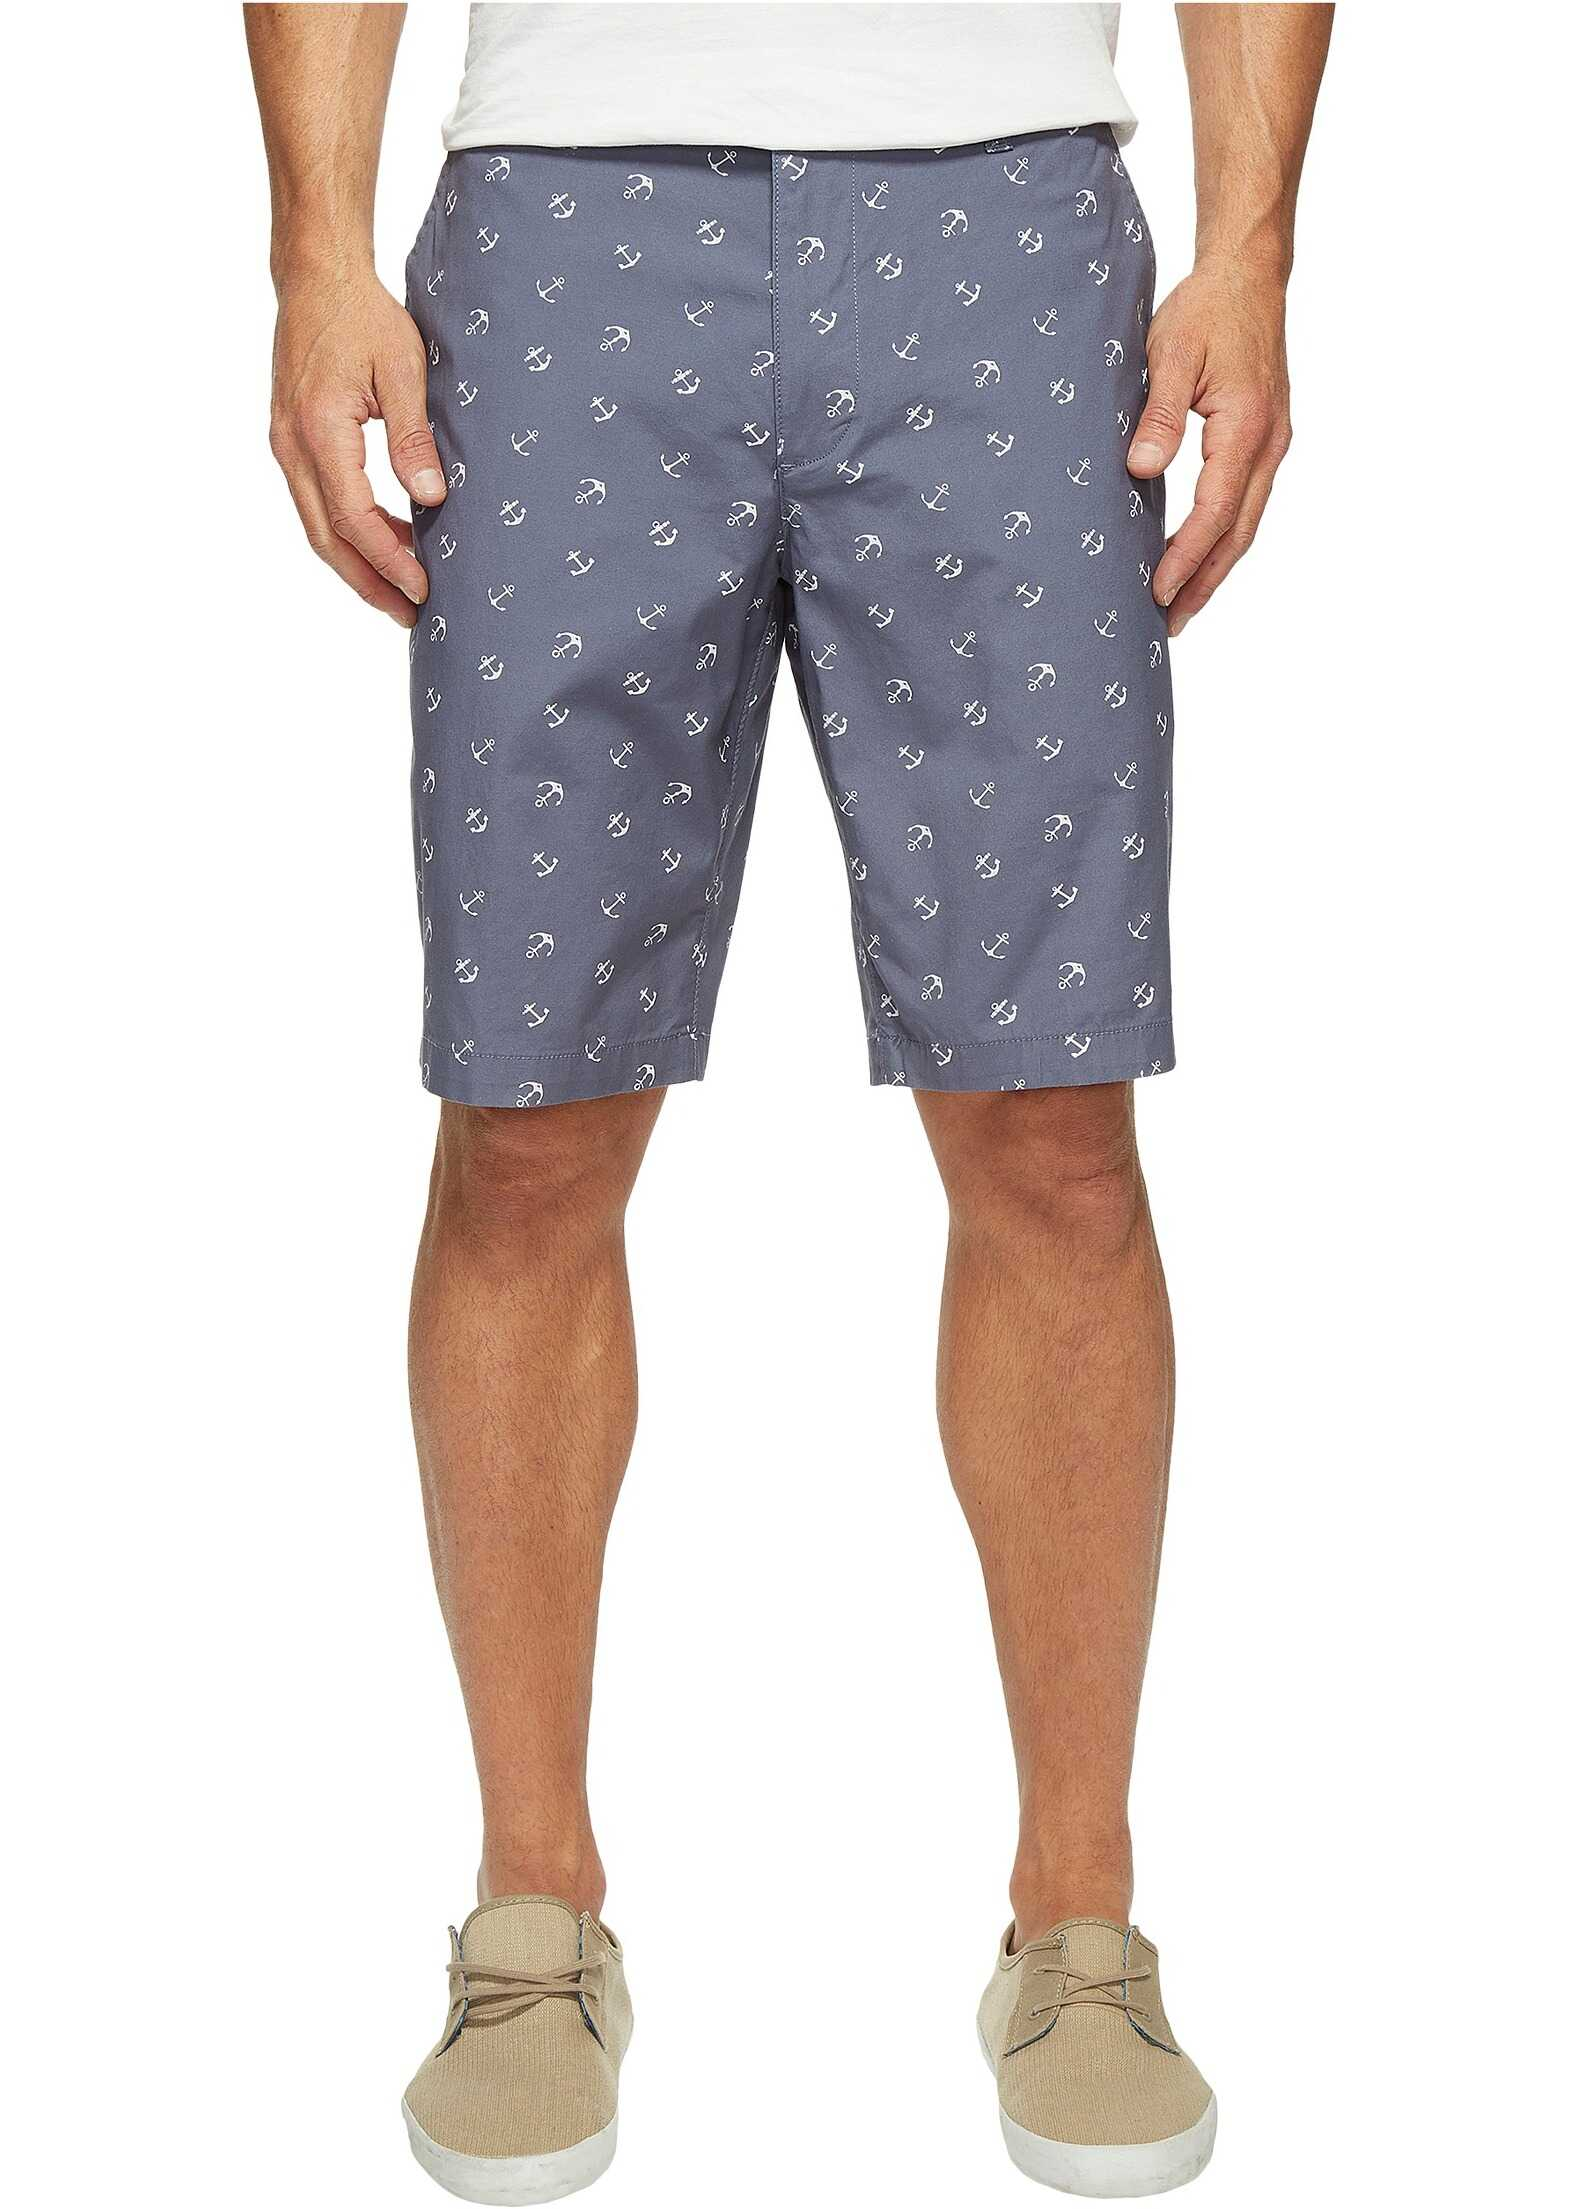 Dockers Perfect Short Classic Fit Flat Front Anchor Print Vintage Indigo Stretch